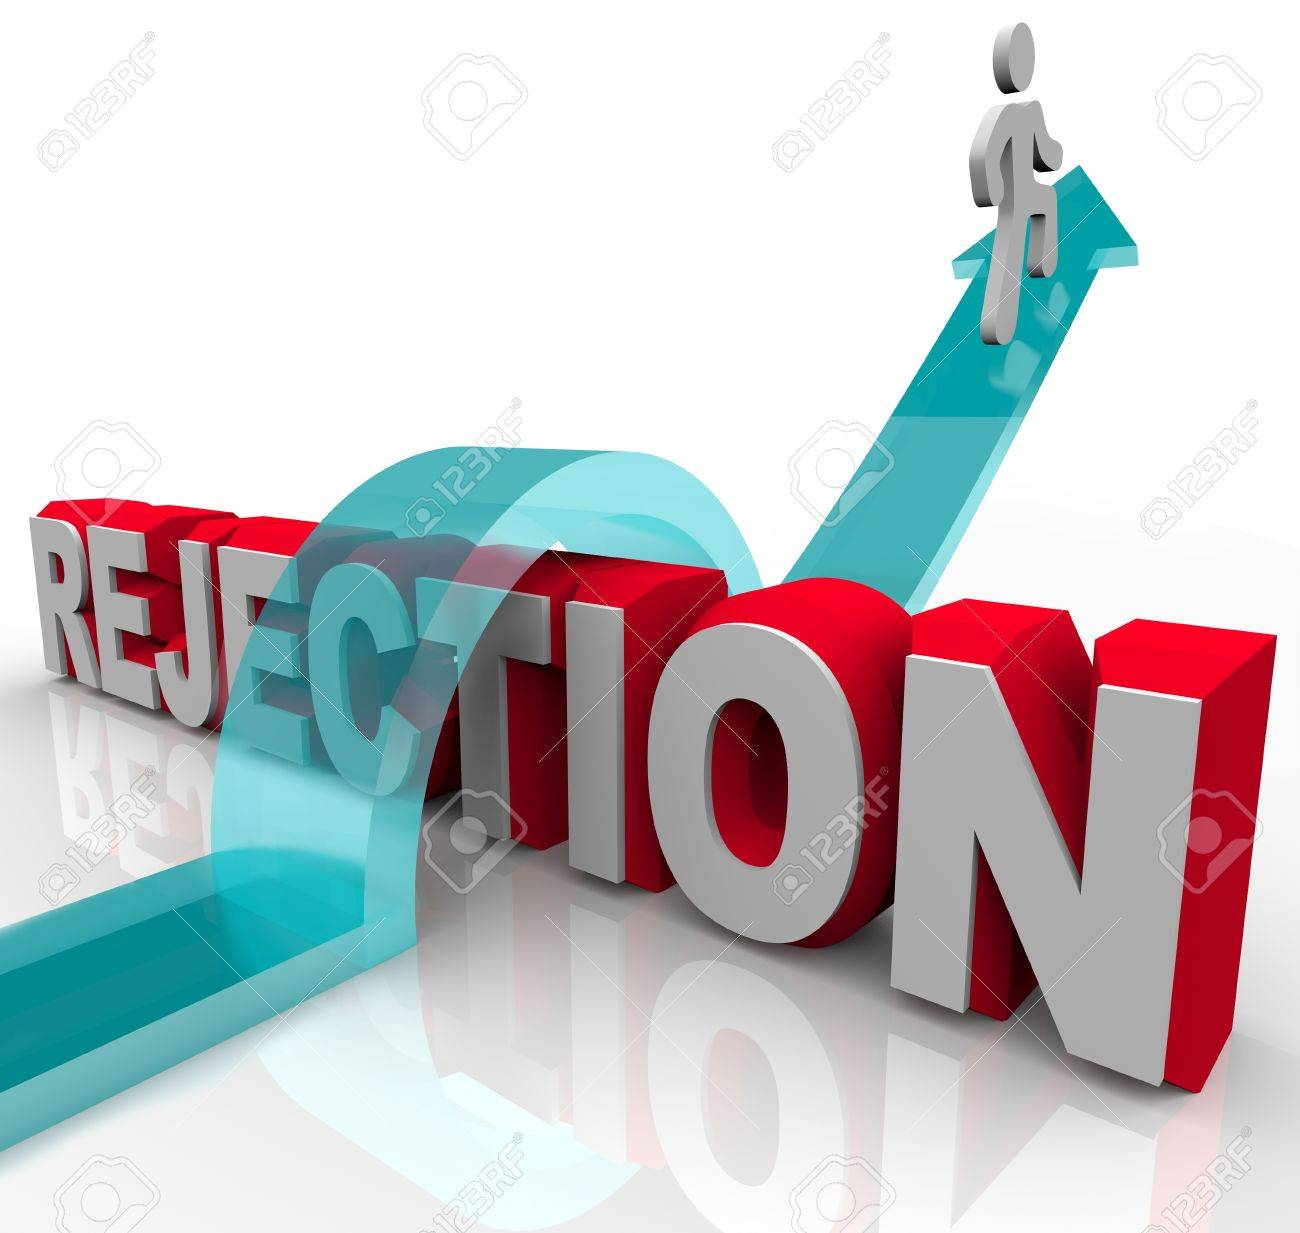 A person jumps over the word Rejection, riding an arrow to success Stock Photo - 8989826